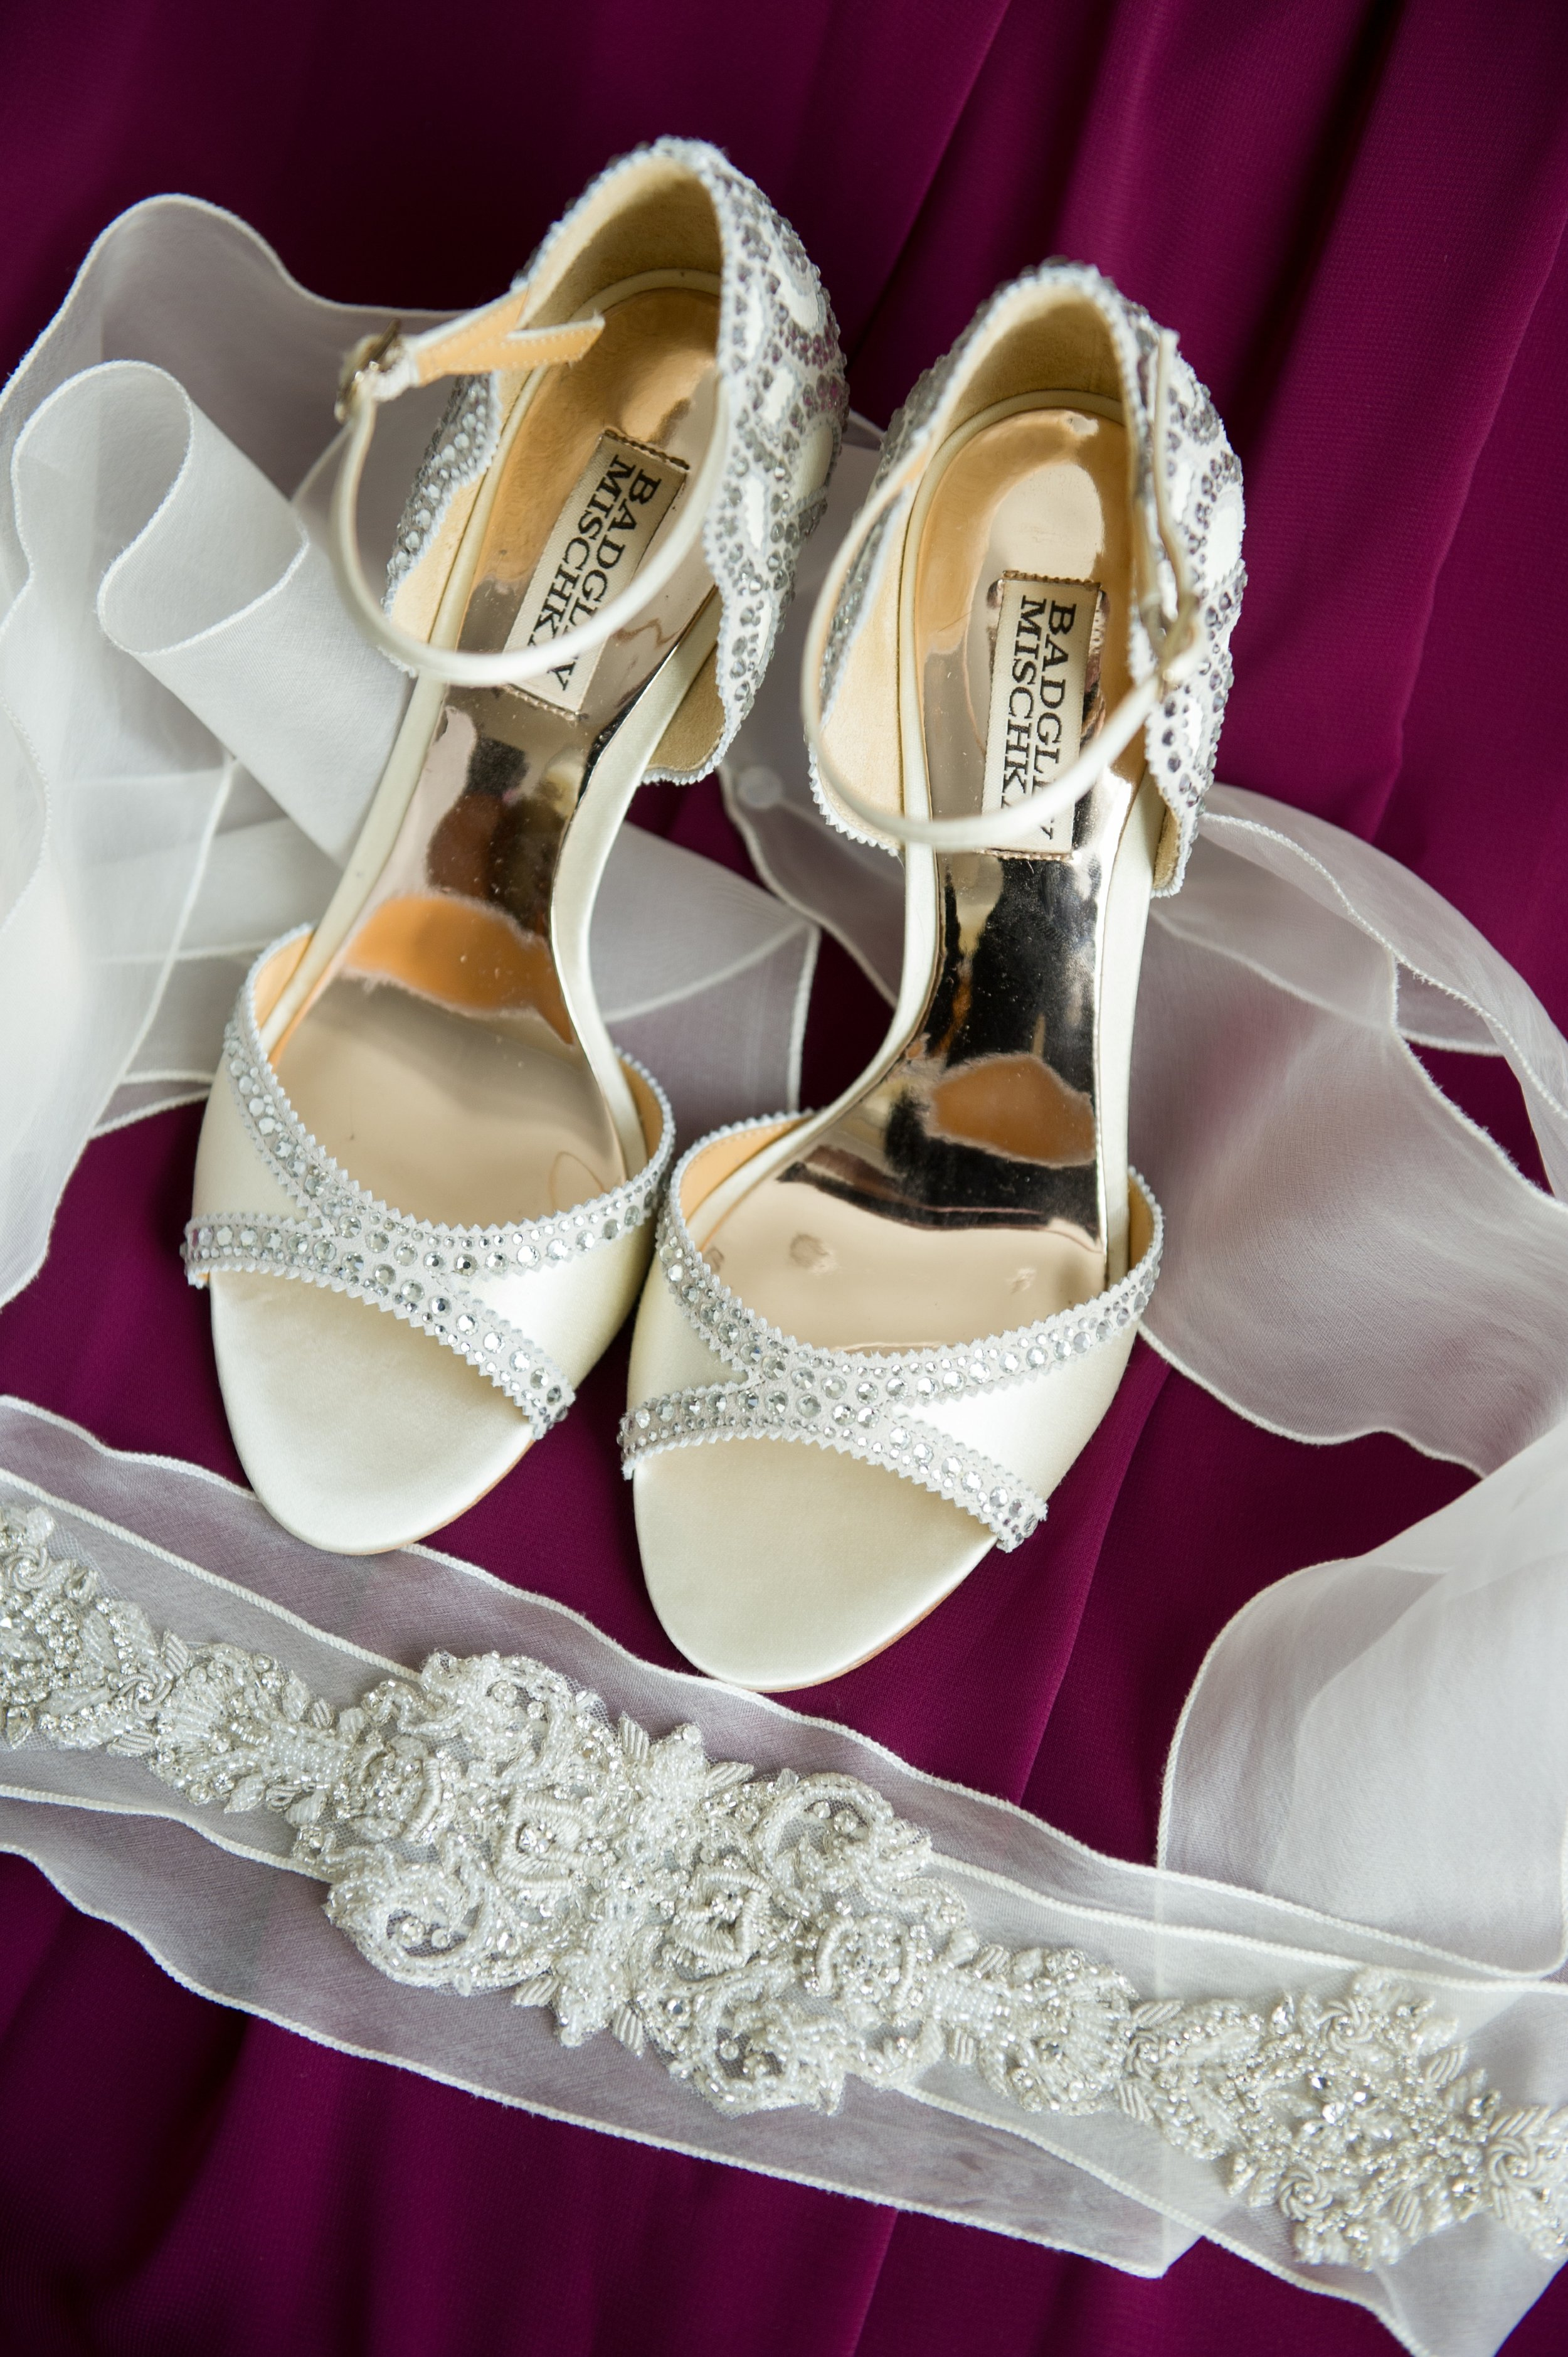 The bride wore striking white, crystal-studded Badgley Mischka heels, and an embroidered beaded sash.